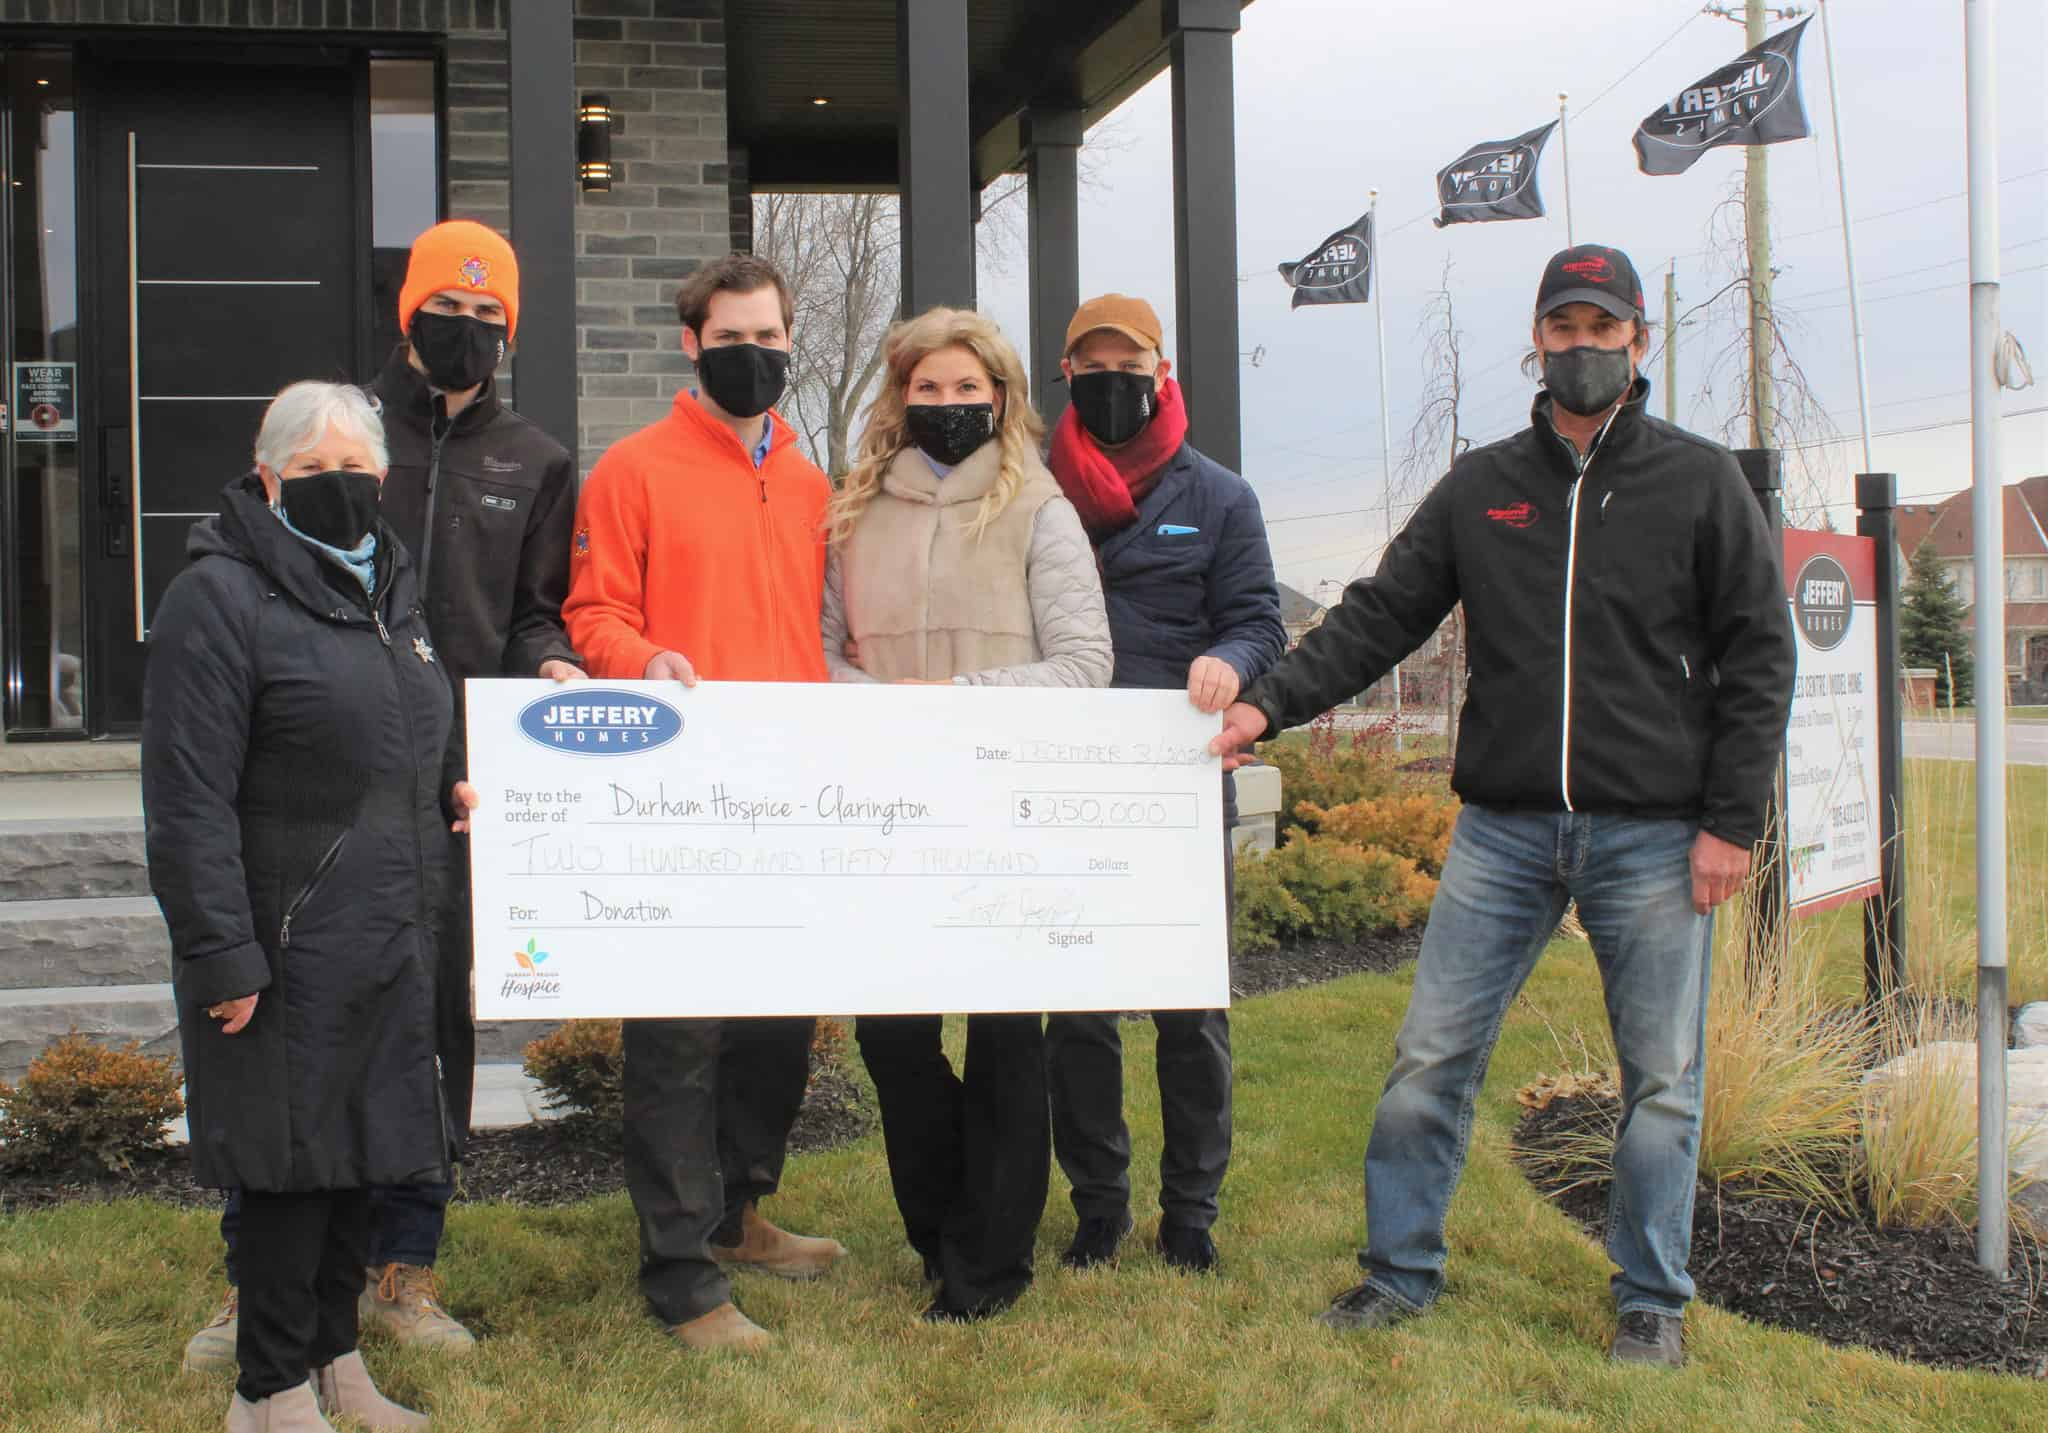 Clarington's residential hospice gets a boost